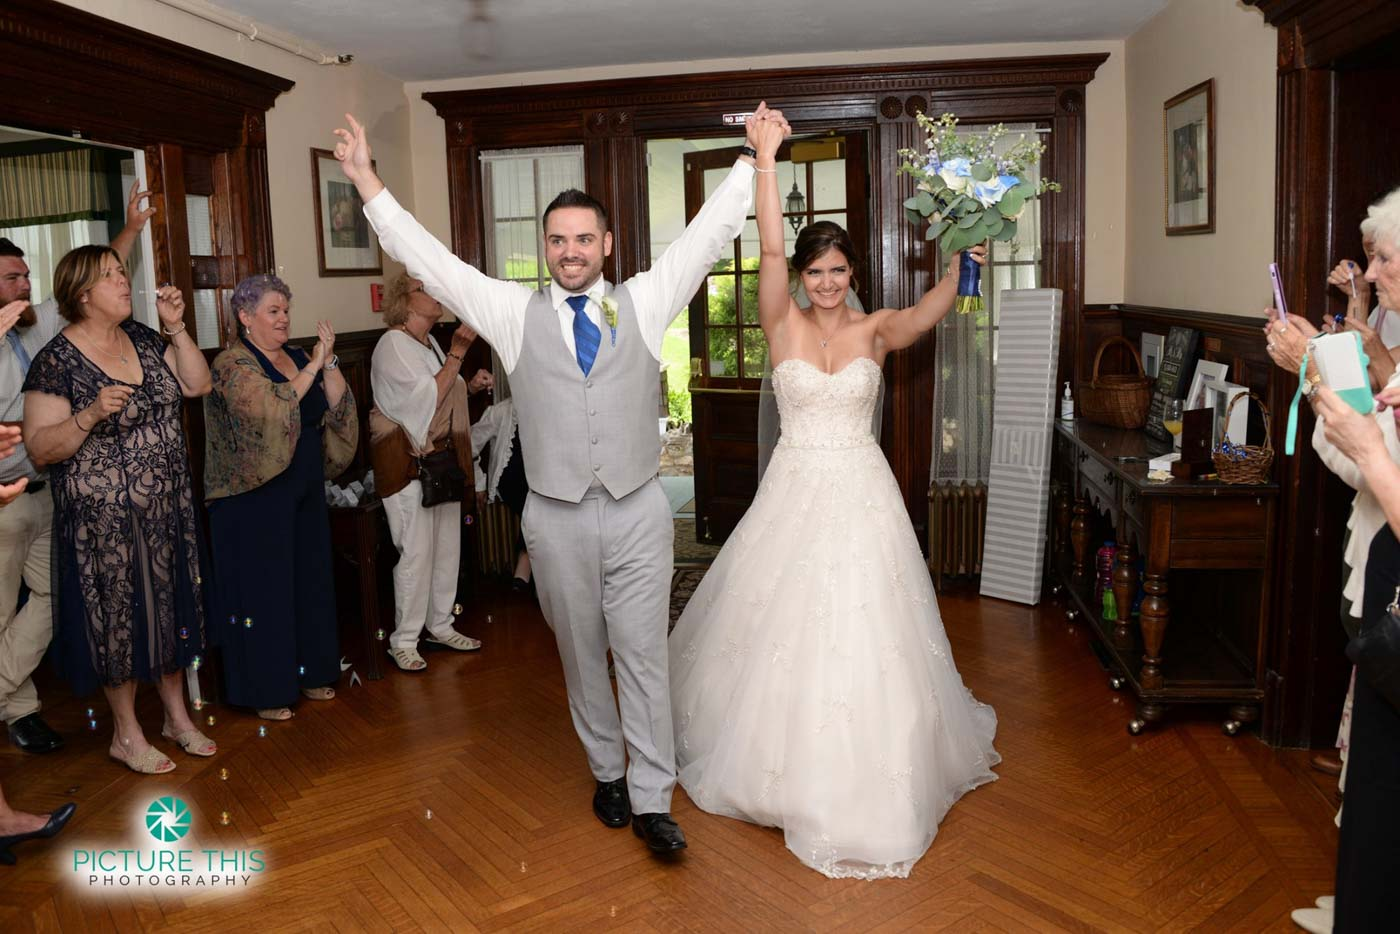 a-late-june-wedding-couple-walking-into-mansion-with-arms-lifted-high